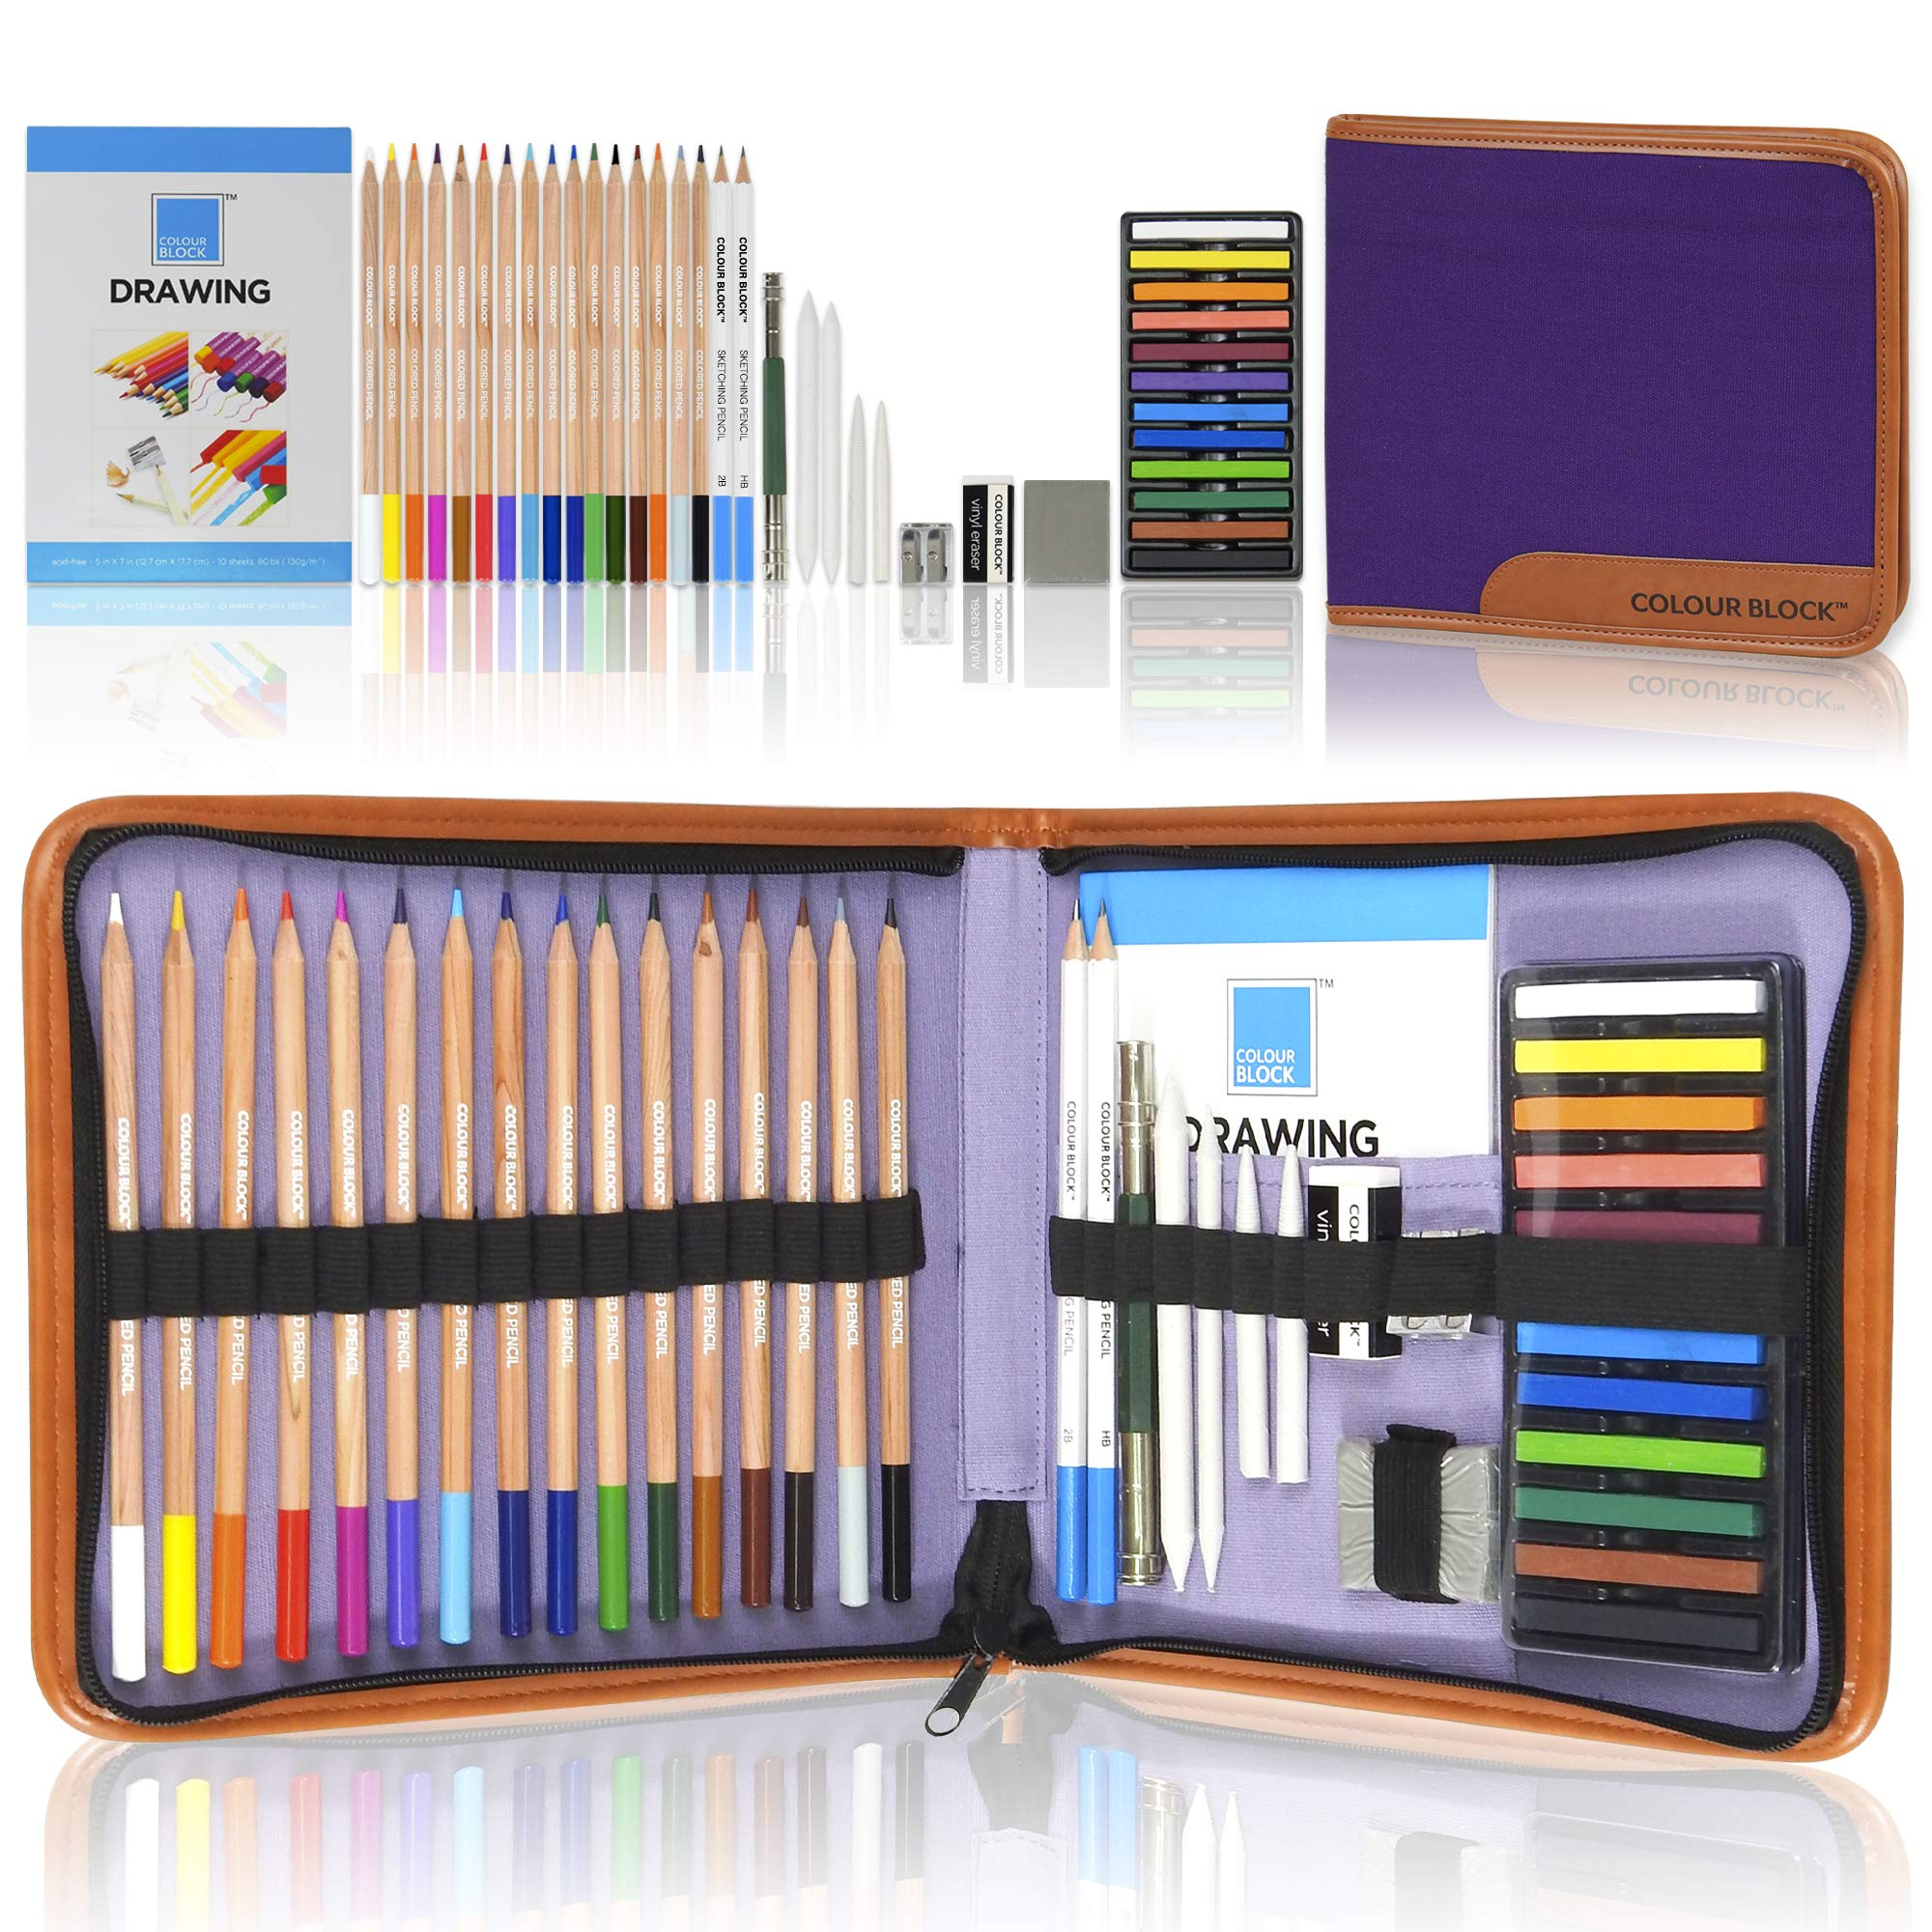 COLOUR BLOCK Drawing Travel Art Set - 40 PC, complete with 16 Drawing Colored Pencils Set, 12 Soft Pastels Set, 2 Sketching Pencils, Drawing Pad, and Assorted Tools in a Canvas Zippered Carry Case